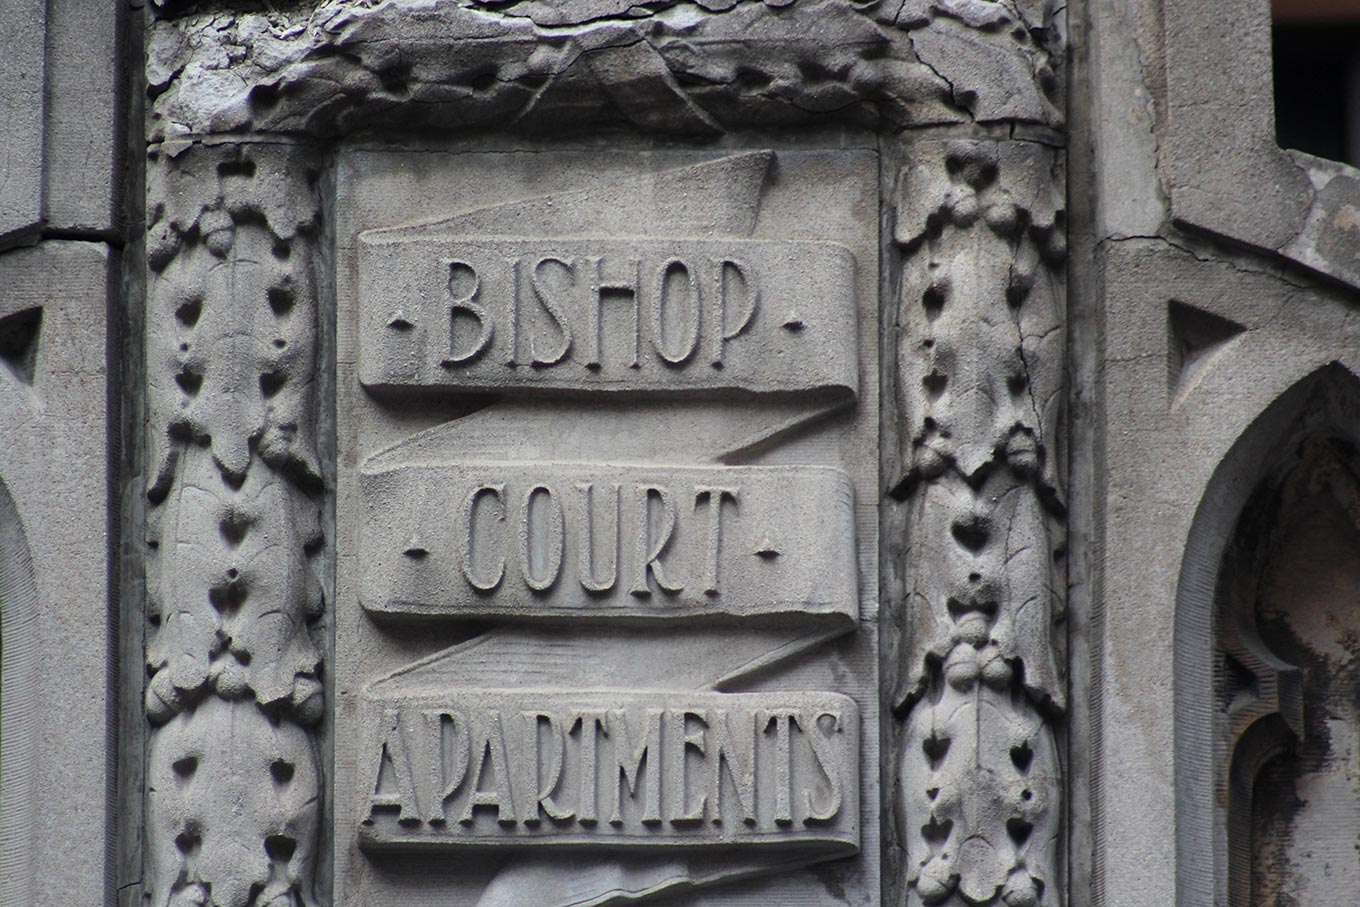 Raised sandstone inscription on the Bishop Court Apartments facade at the corner of rue Bishop and boulevard de Maisonneuve Ouest.